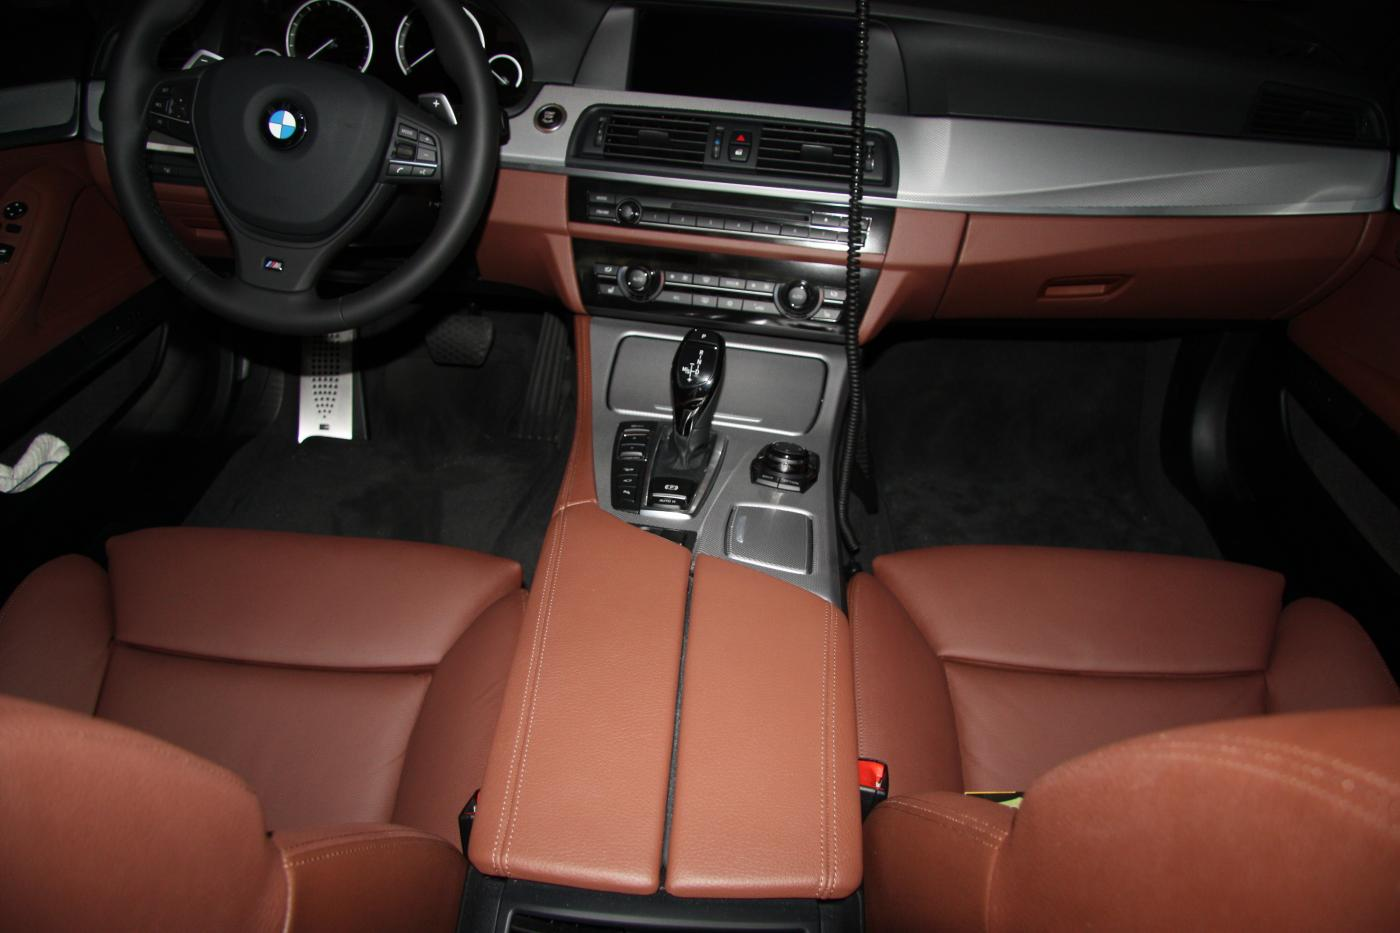 Car interior brown - Attached Images